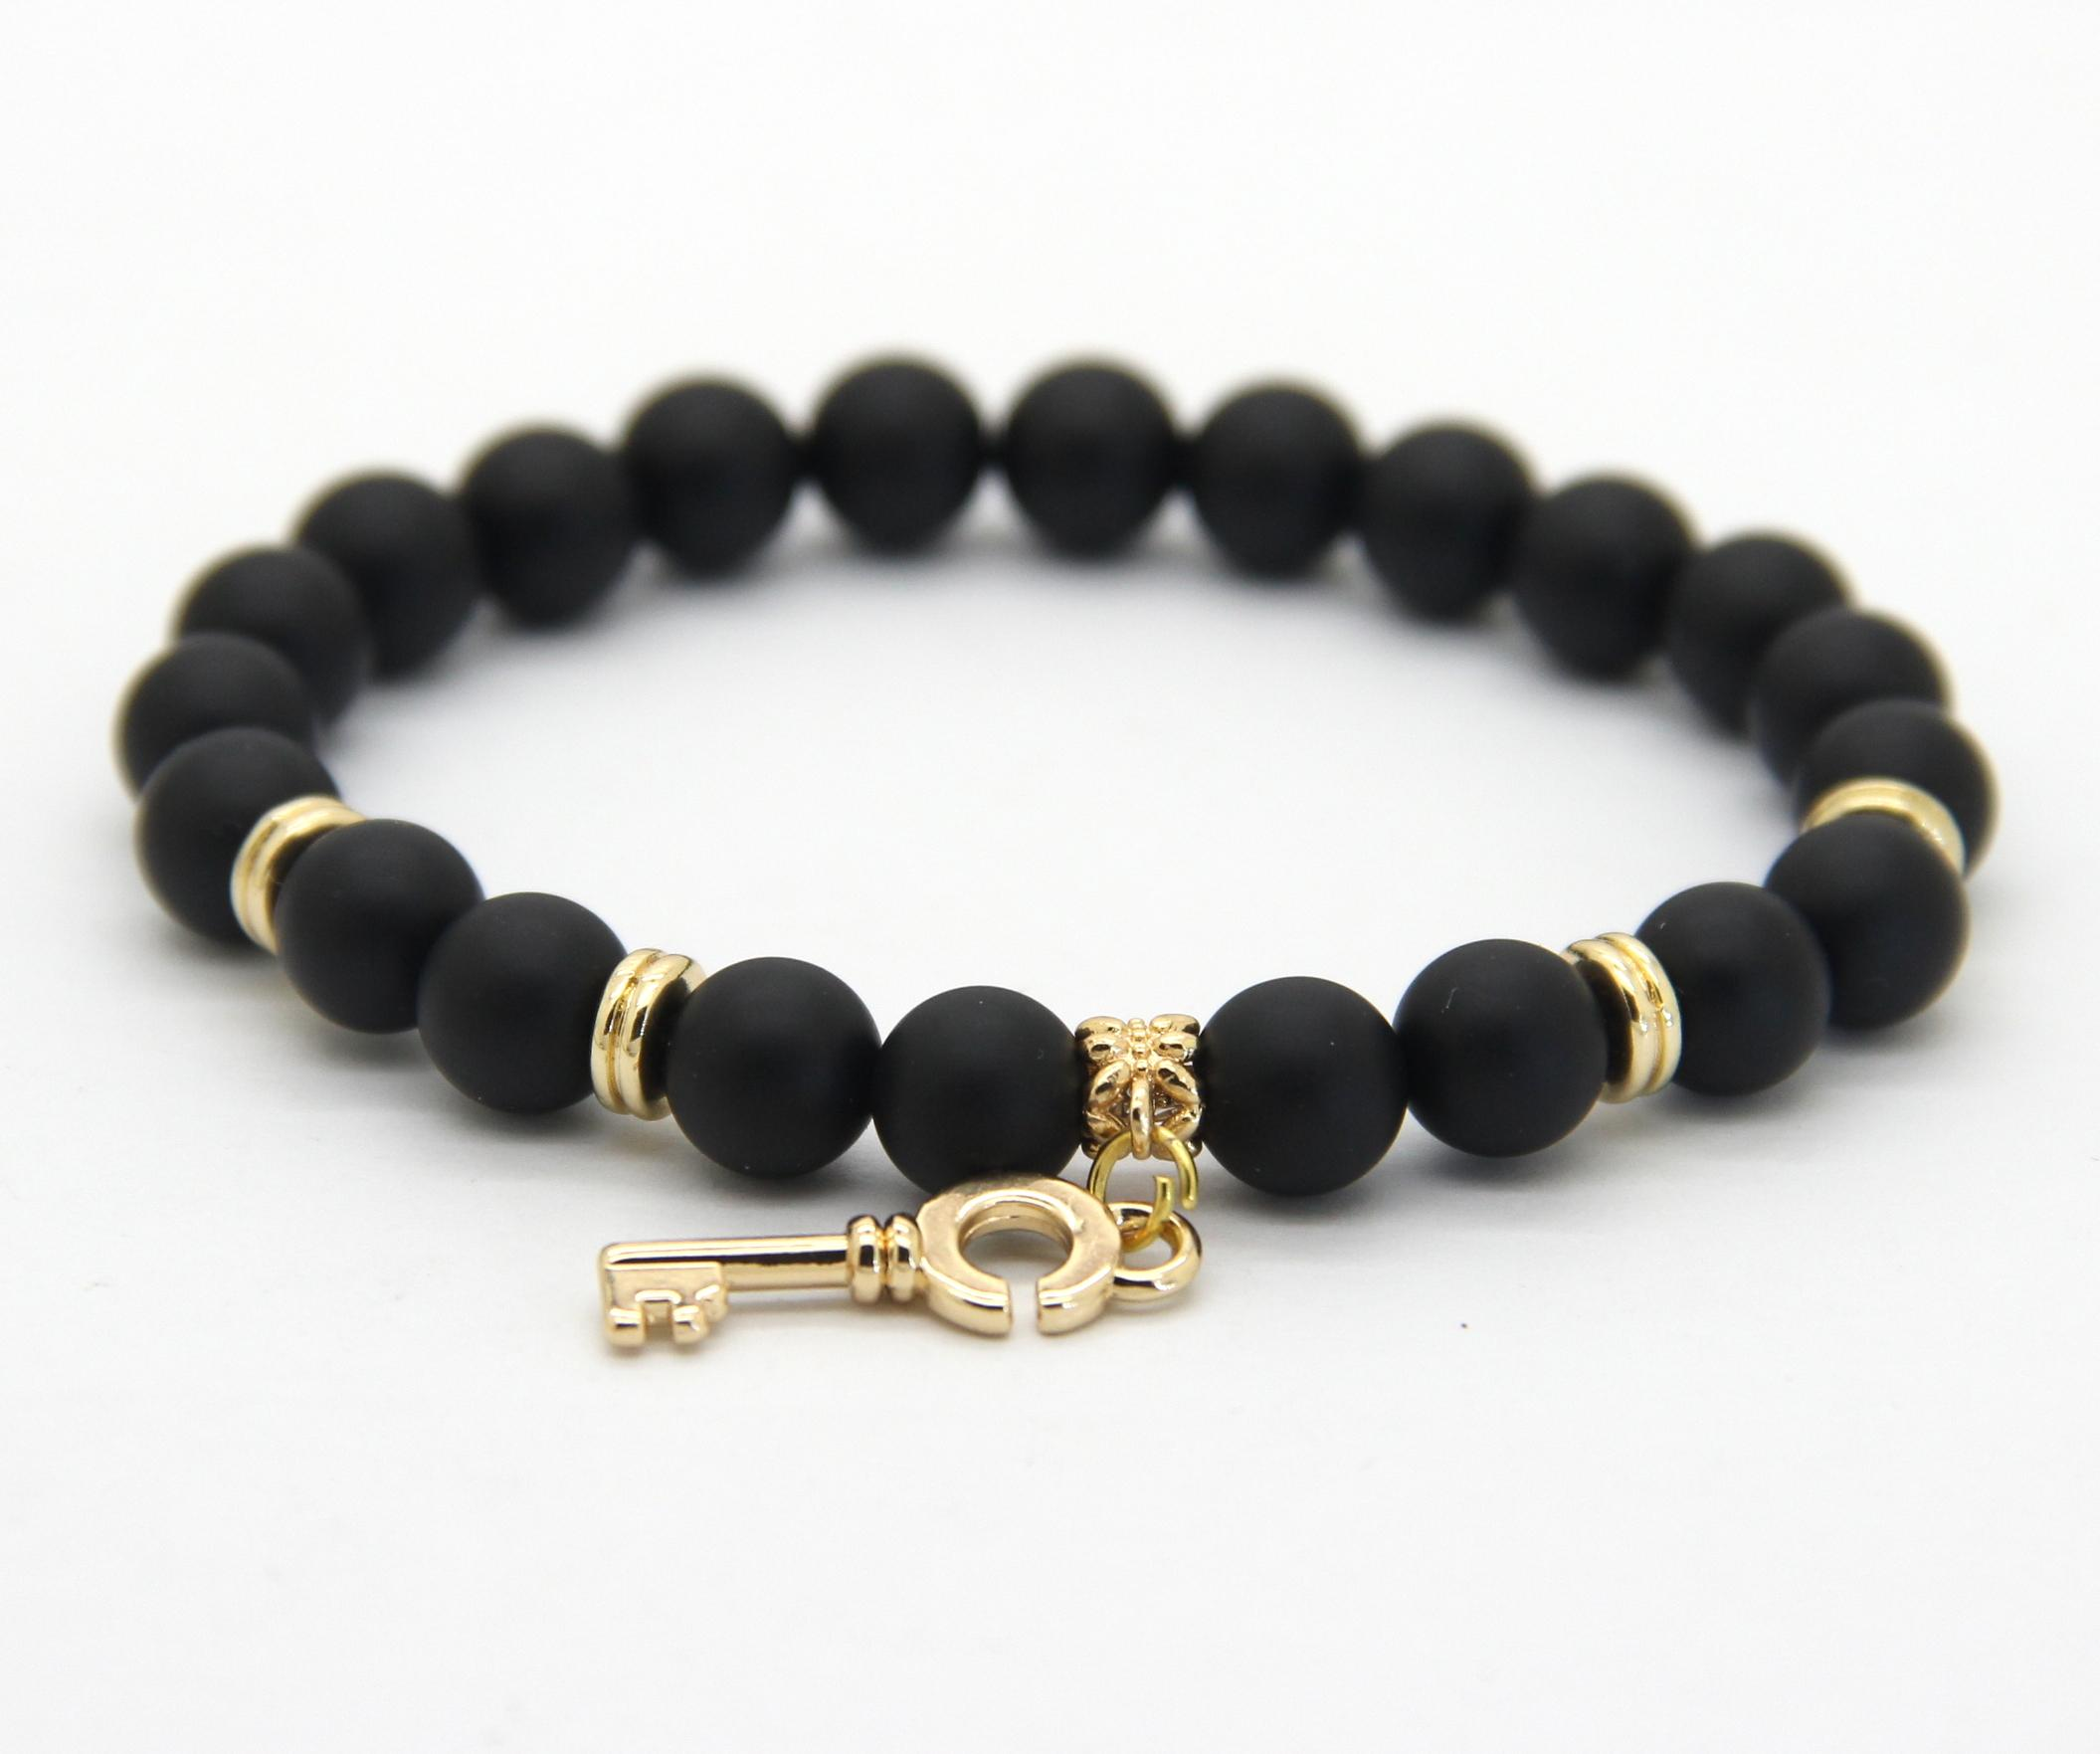 Wholesale 8mm Real Matte Onyx Stone Beads with Key pendant Gold Bracelets,  New Arrival Stone Jewelry for Party Gift